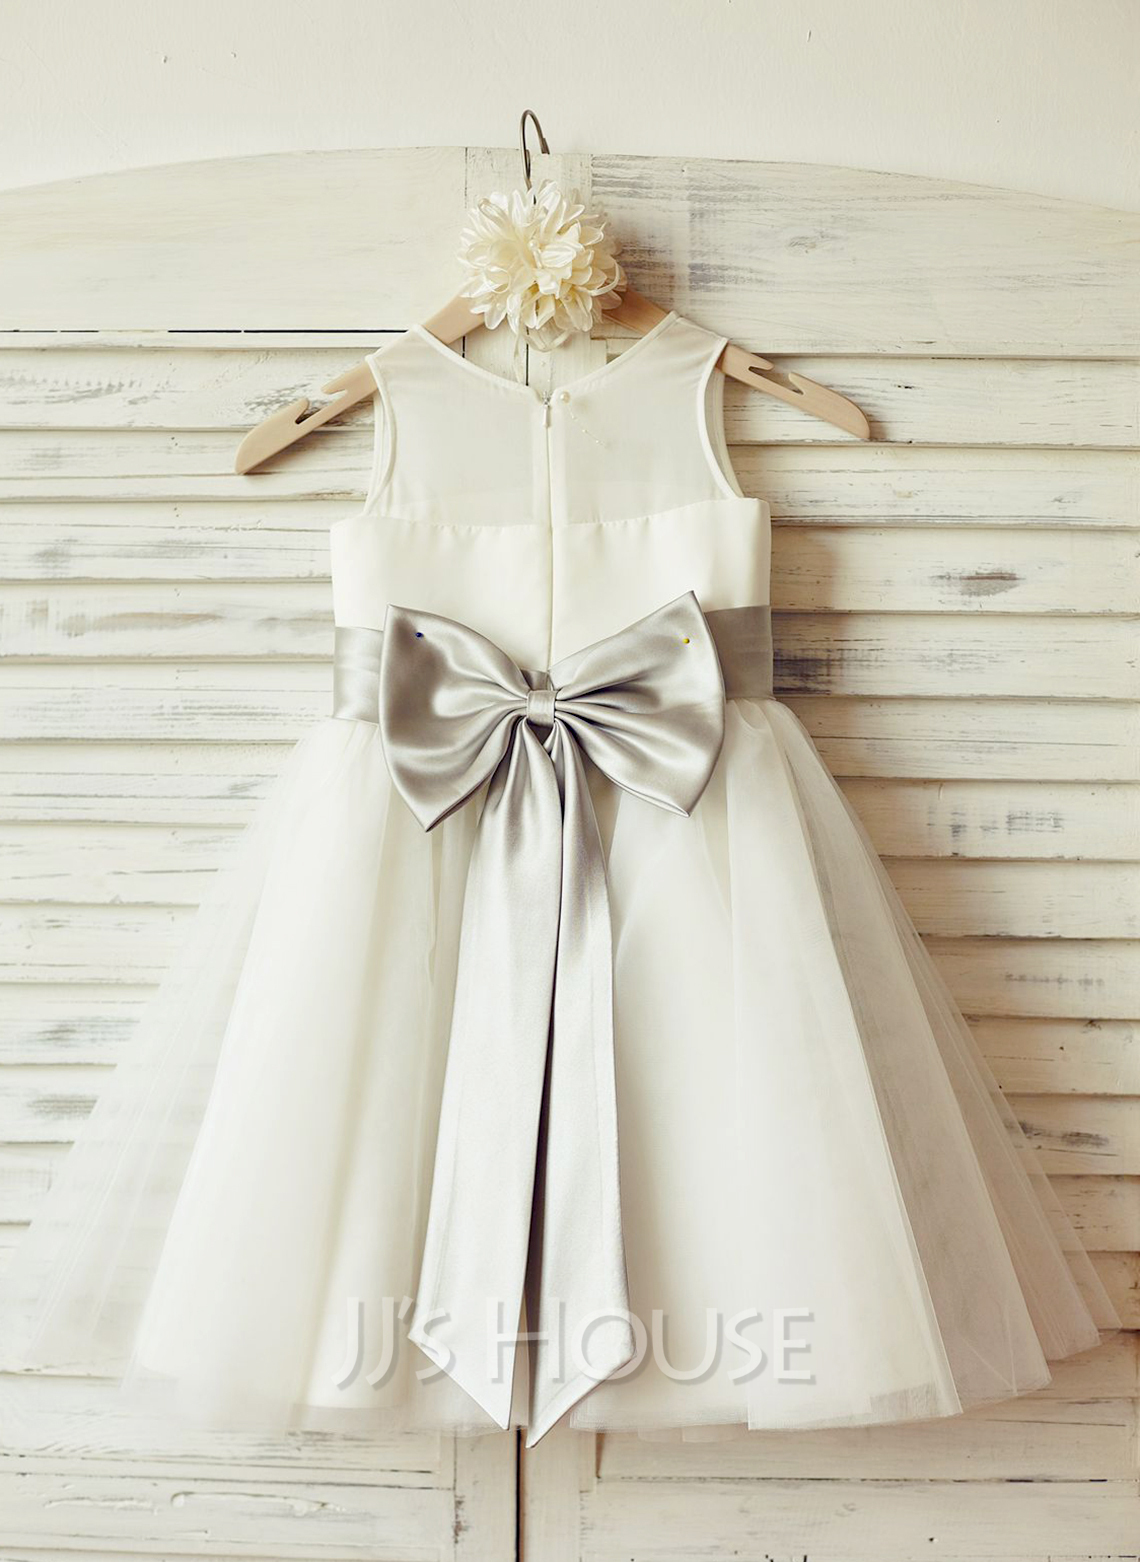 A-Line/Princess Knee-length Flower Girl Dress - Chiffon Tulle Sleeveless Scoop Neck With Bow(s)